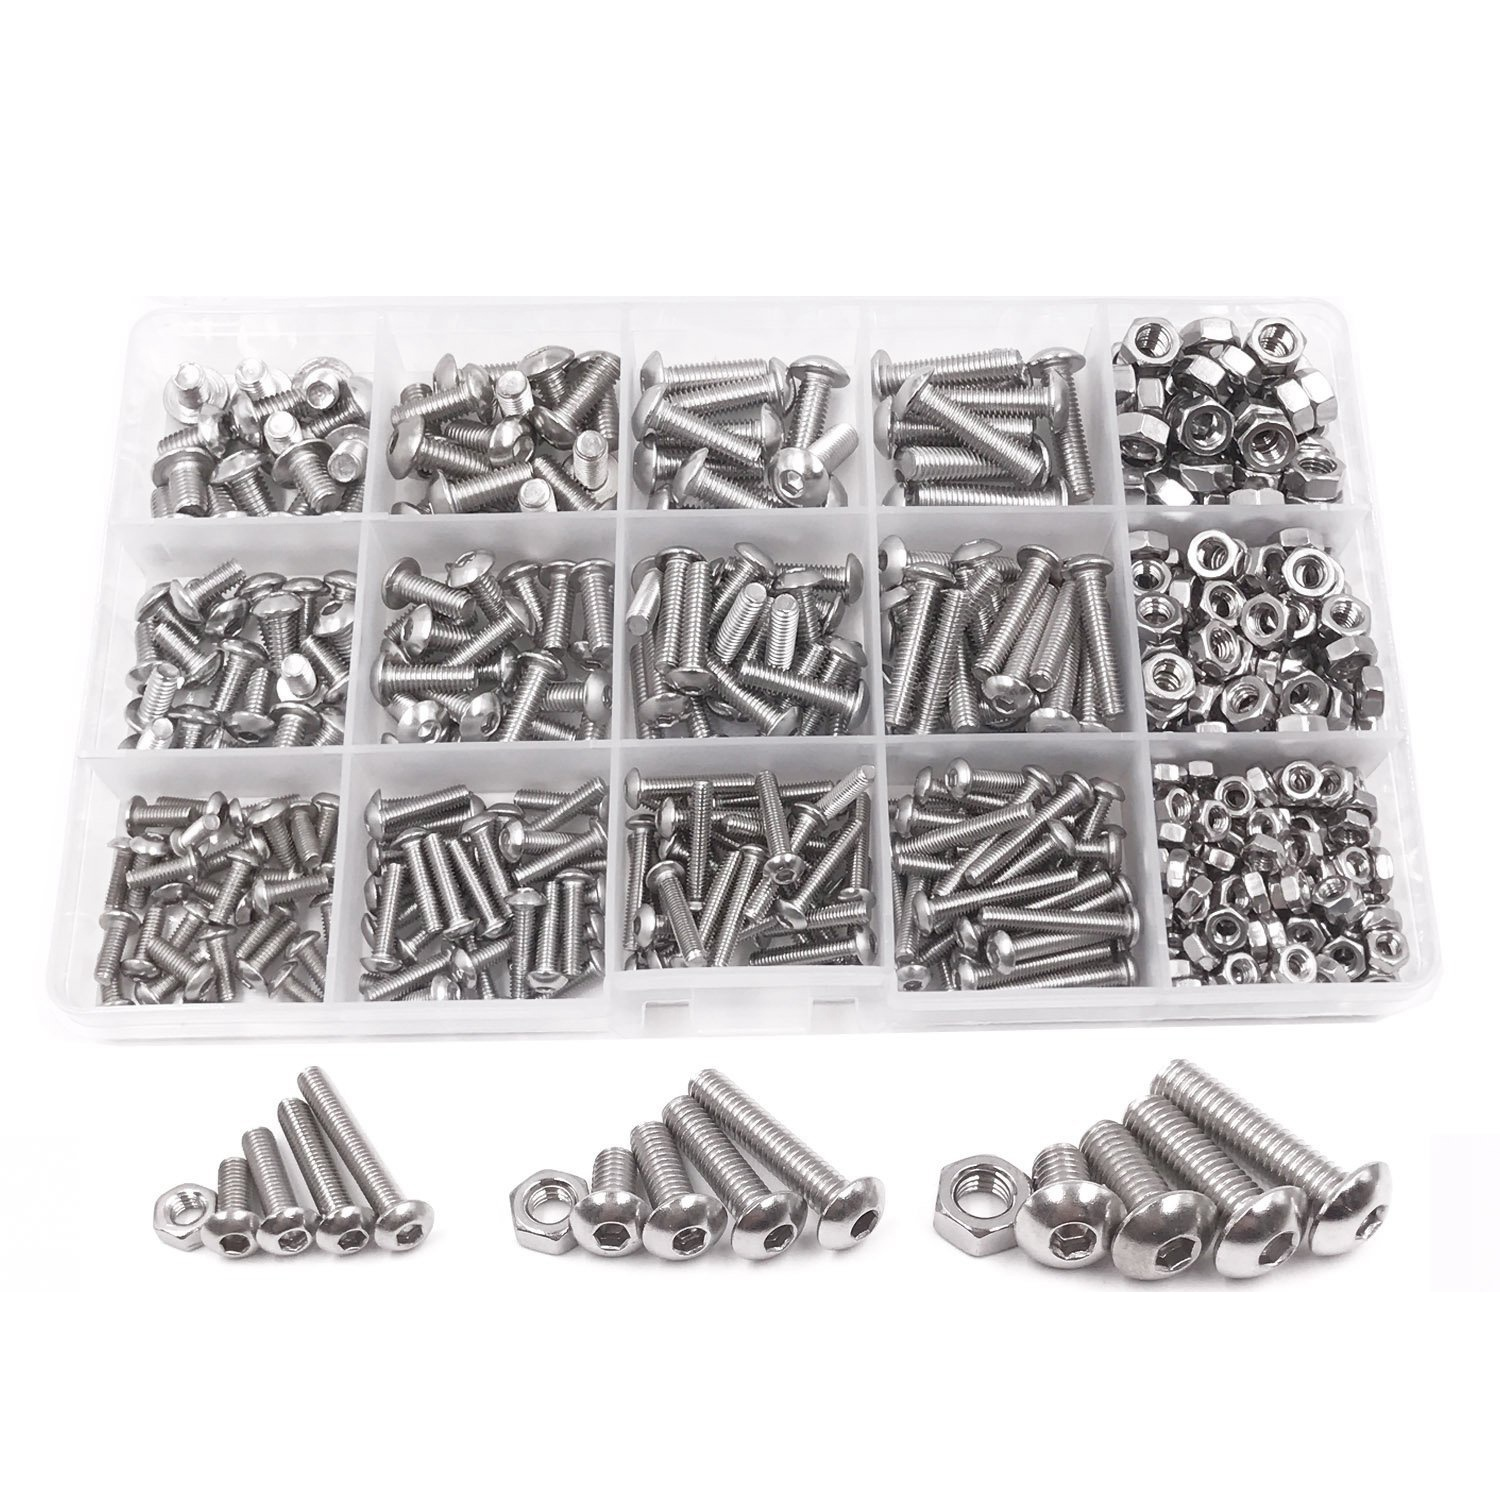 Hot sale 500pcs M3 M4 M5 A2 Stainless Steel ISO7380 Button Head Hex Bolts Hexagon Socket Screws With Nuts Assortment KitHot sale 500pcs M3 M4 M5 A2 Stainless Steel ISO7380 Button Head Hex Bolts Hexagon Socket Screws With Nuts Assortment Kit